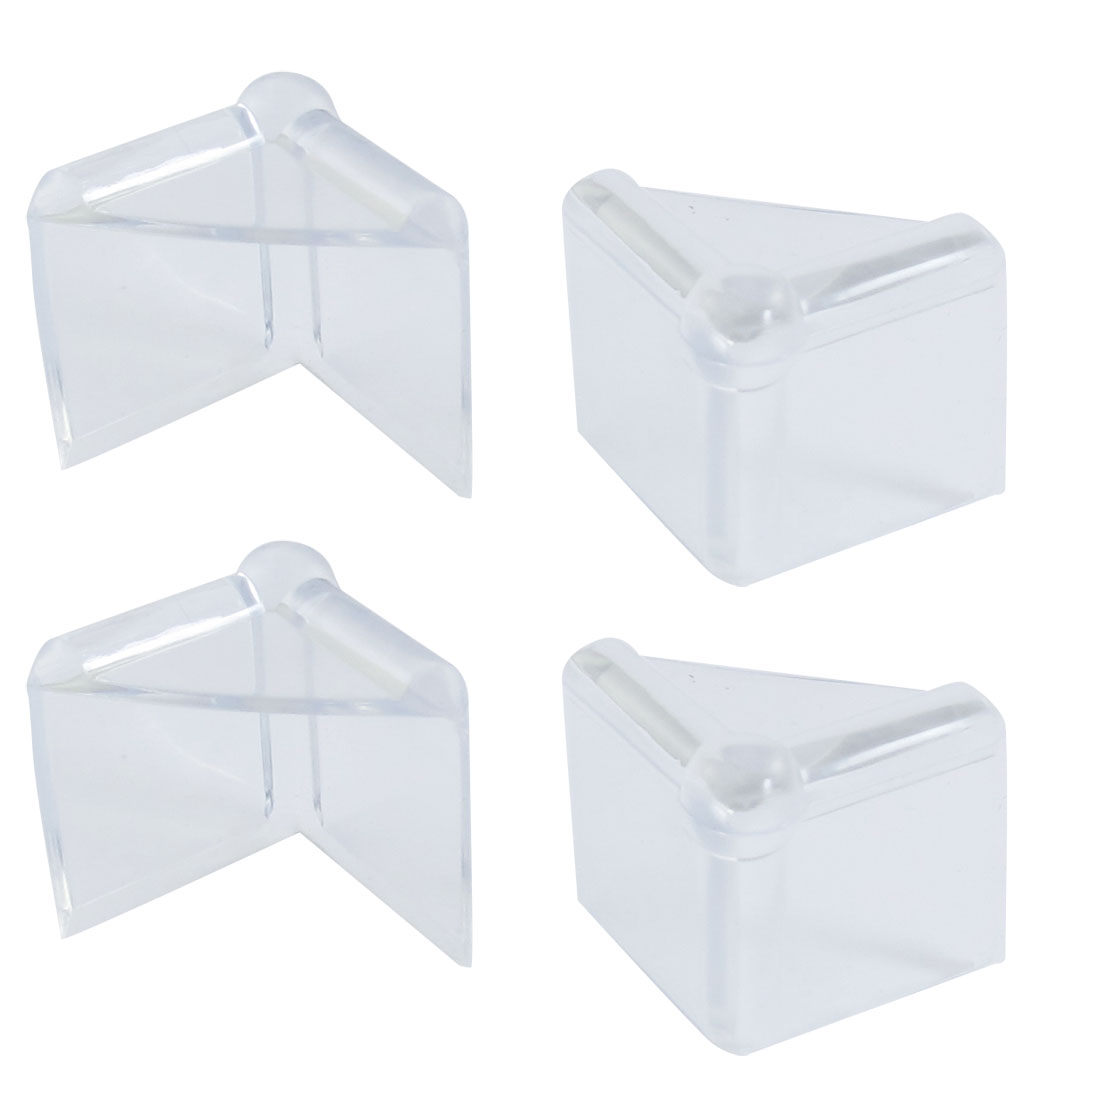 Children Safety Flexible Clear Plastic Corner Guard Cushion 4 Pcs